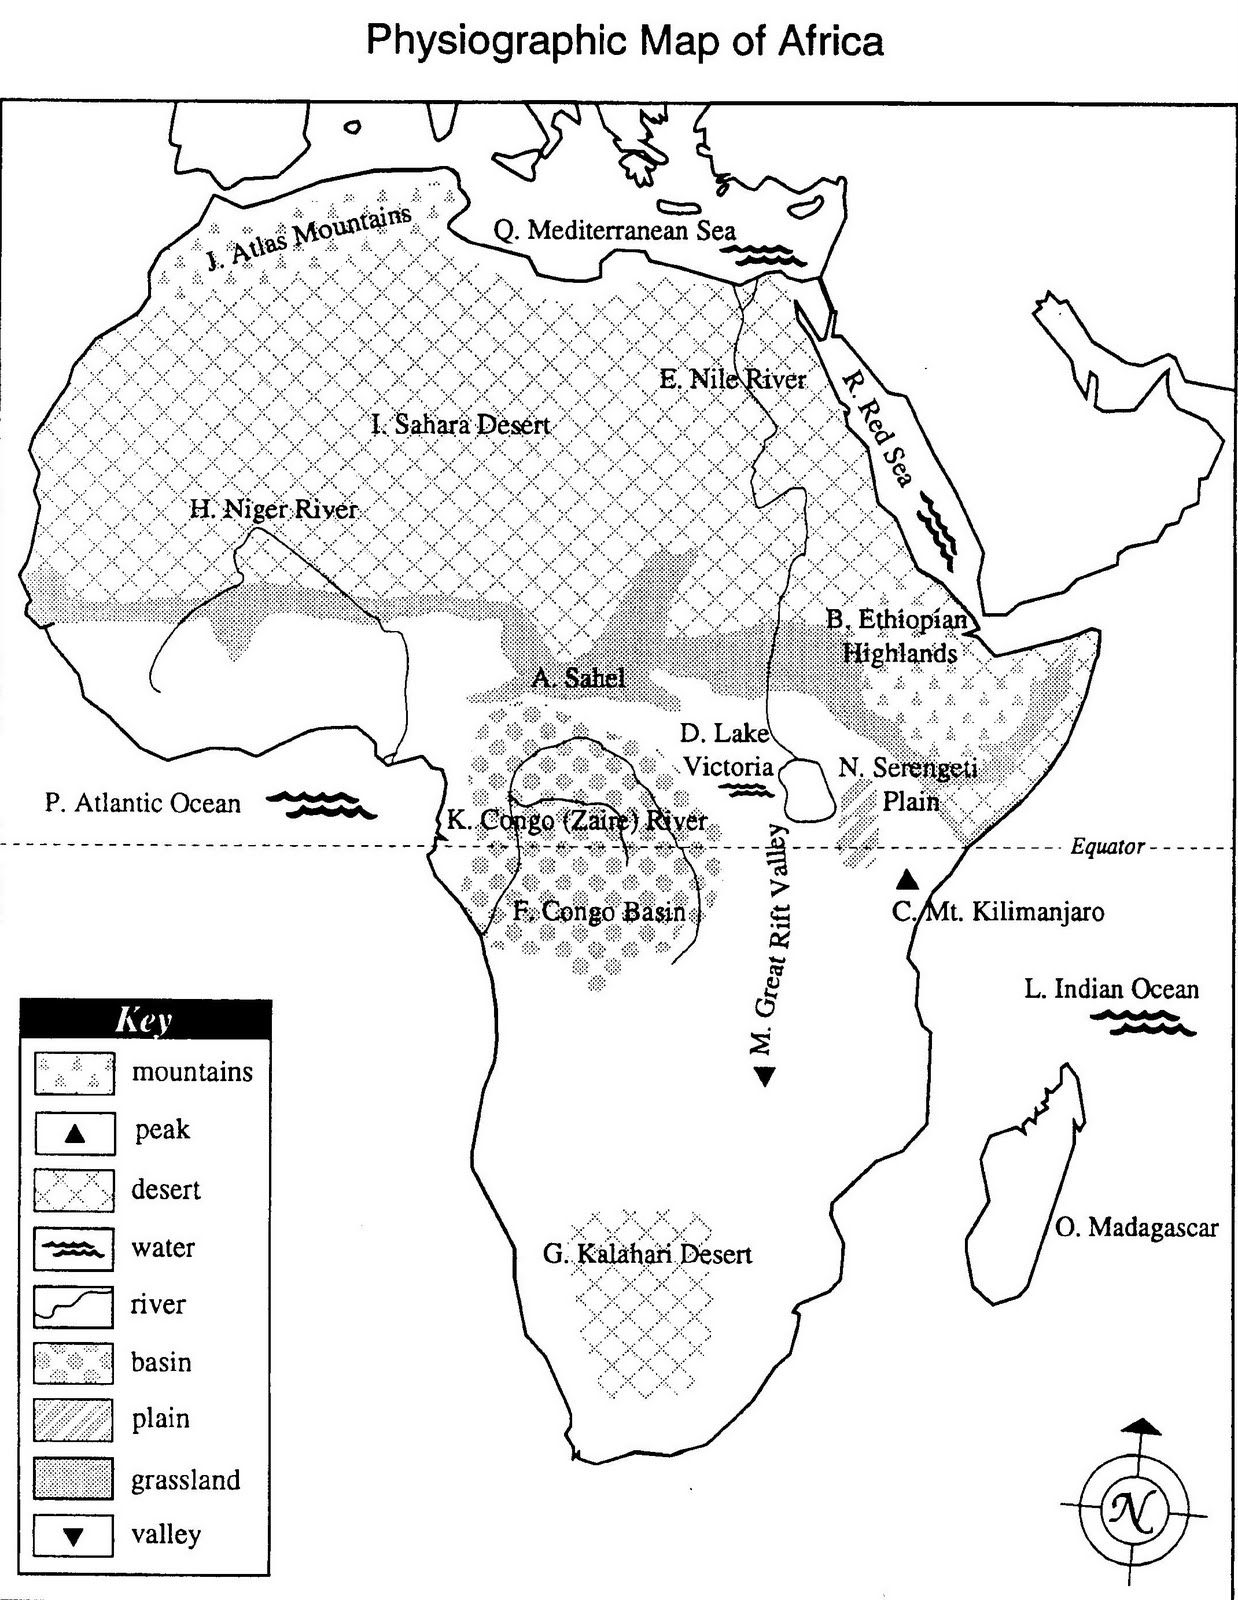 Physiogeographic Map Of Africa